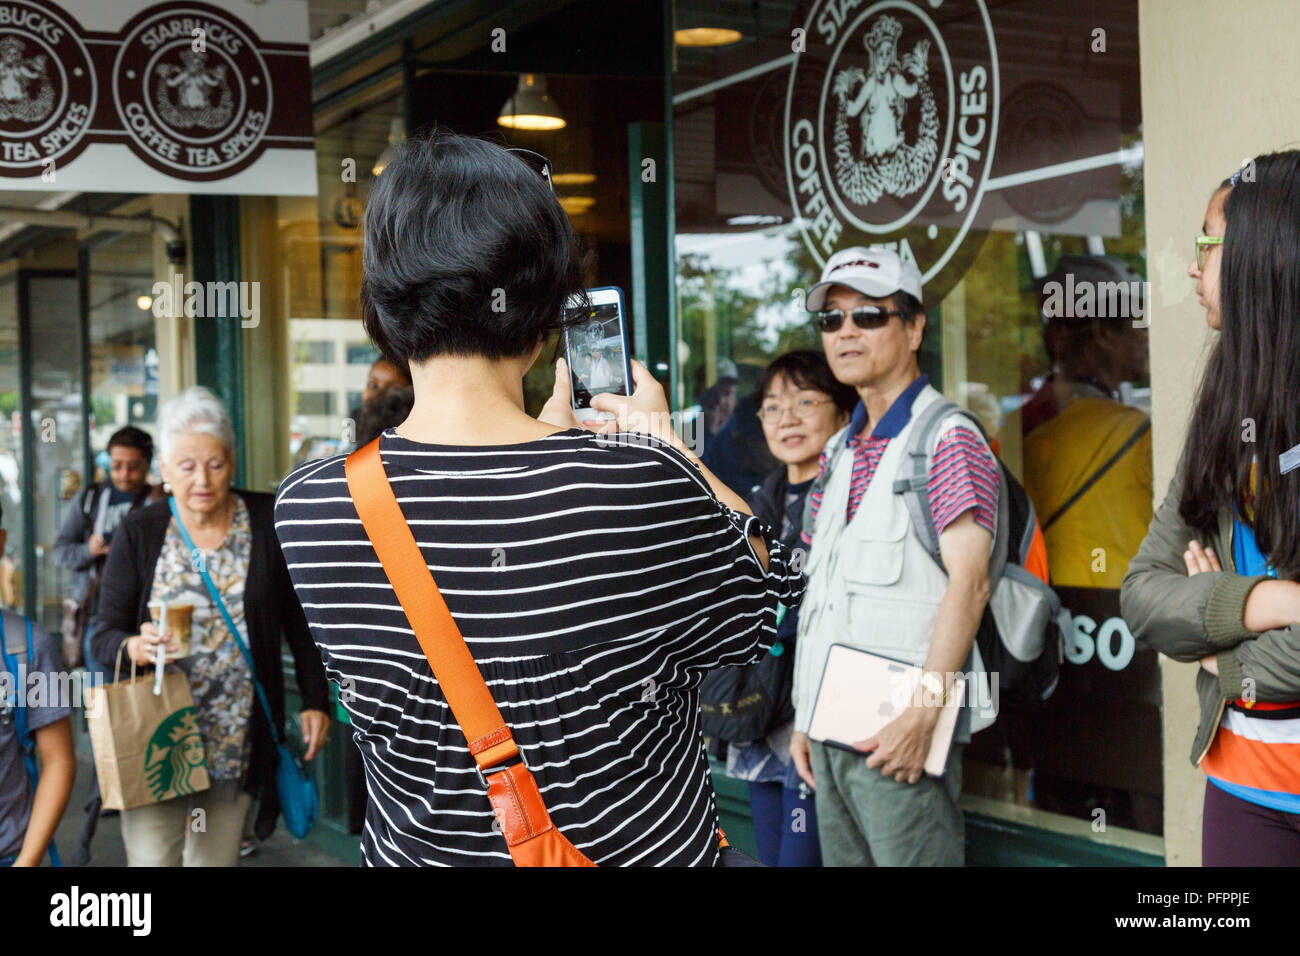 Visitors take pictures in front of original logo printed window of Starbucks Coffee flagship store at Pike Place Market in Seattle, USA. - Stock Image